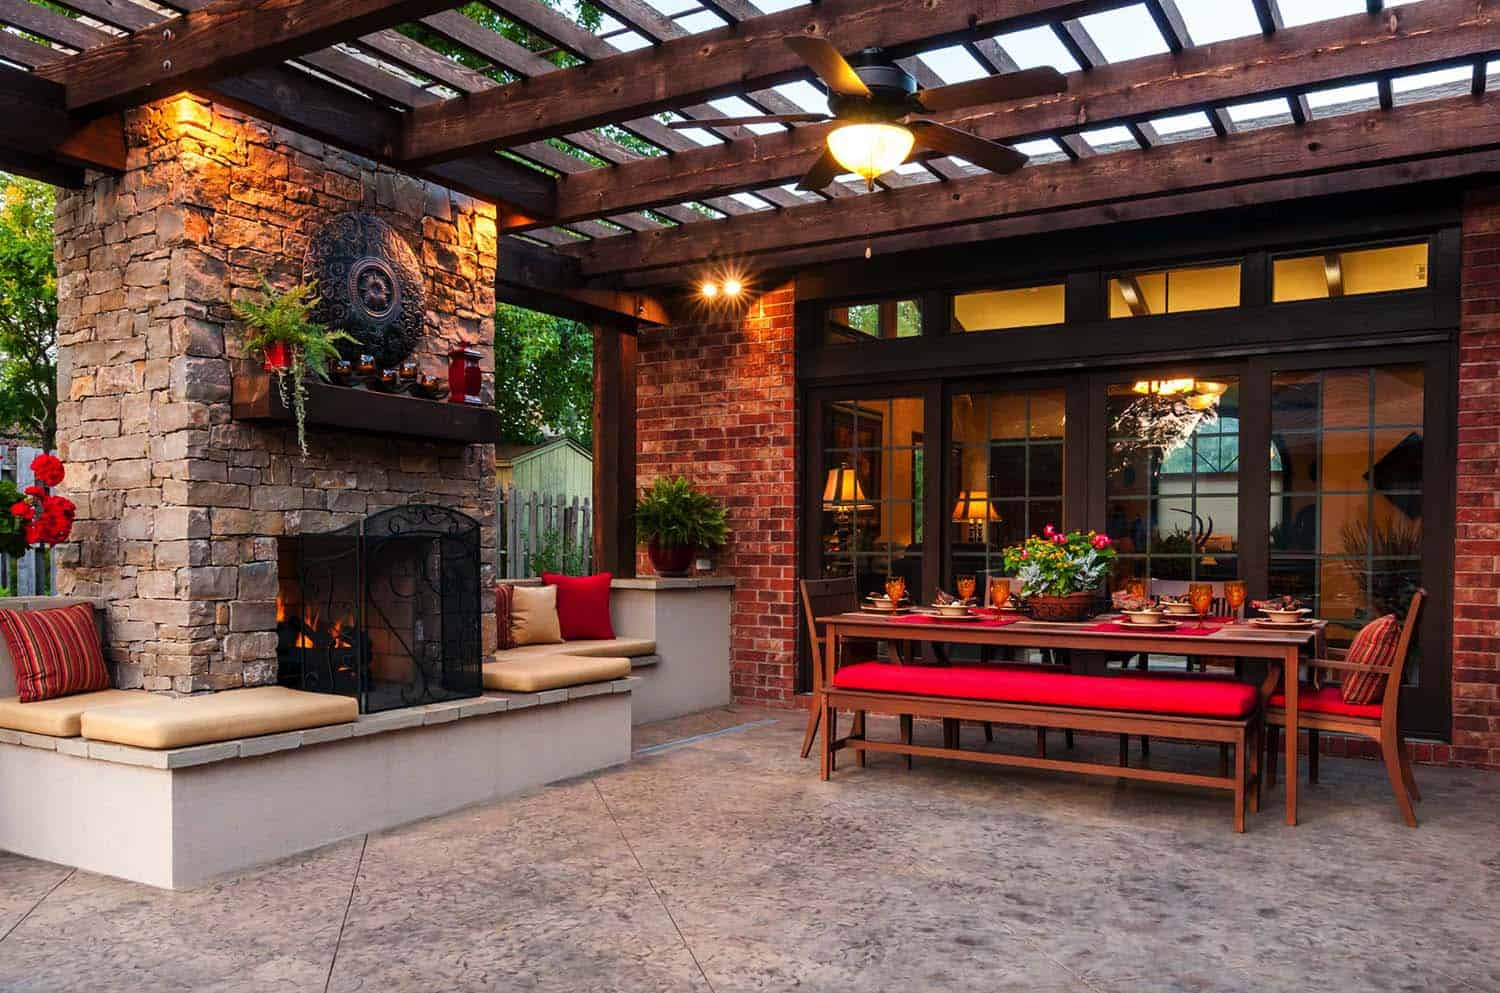 30+ Irresistible outdoor fireplace ideas that will leave ... on Outdoor Fireplaces Ideas  id=79710